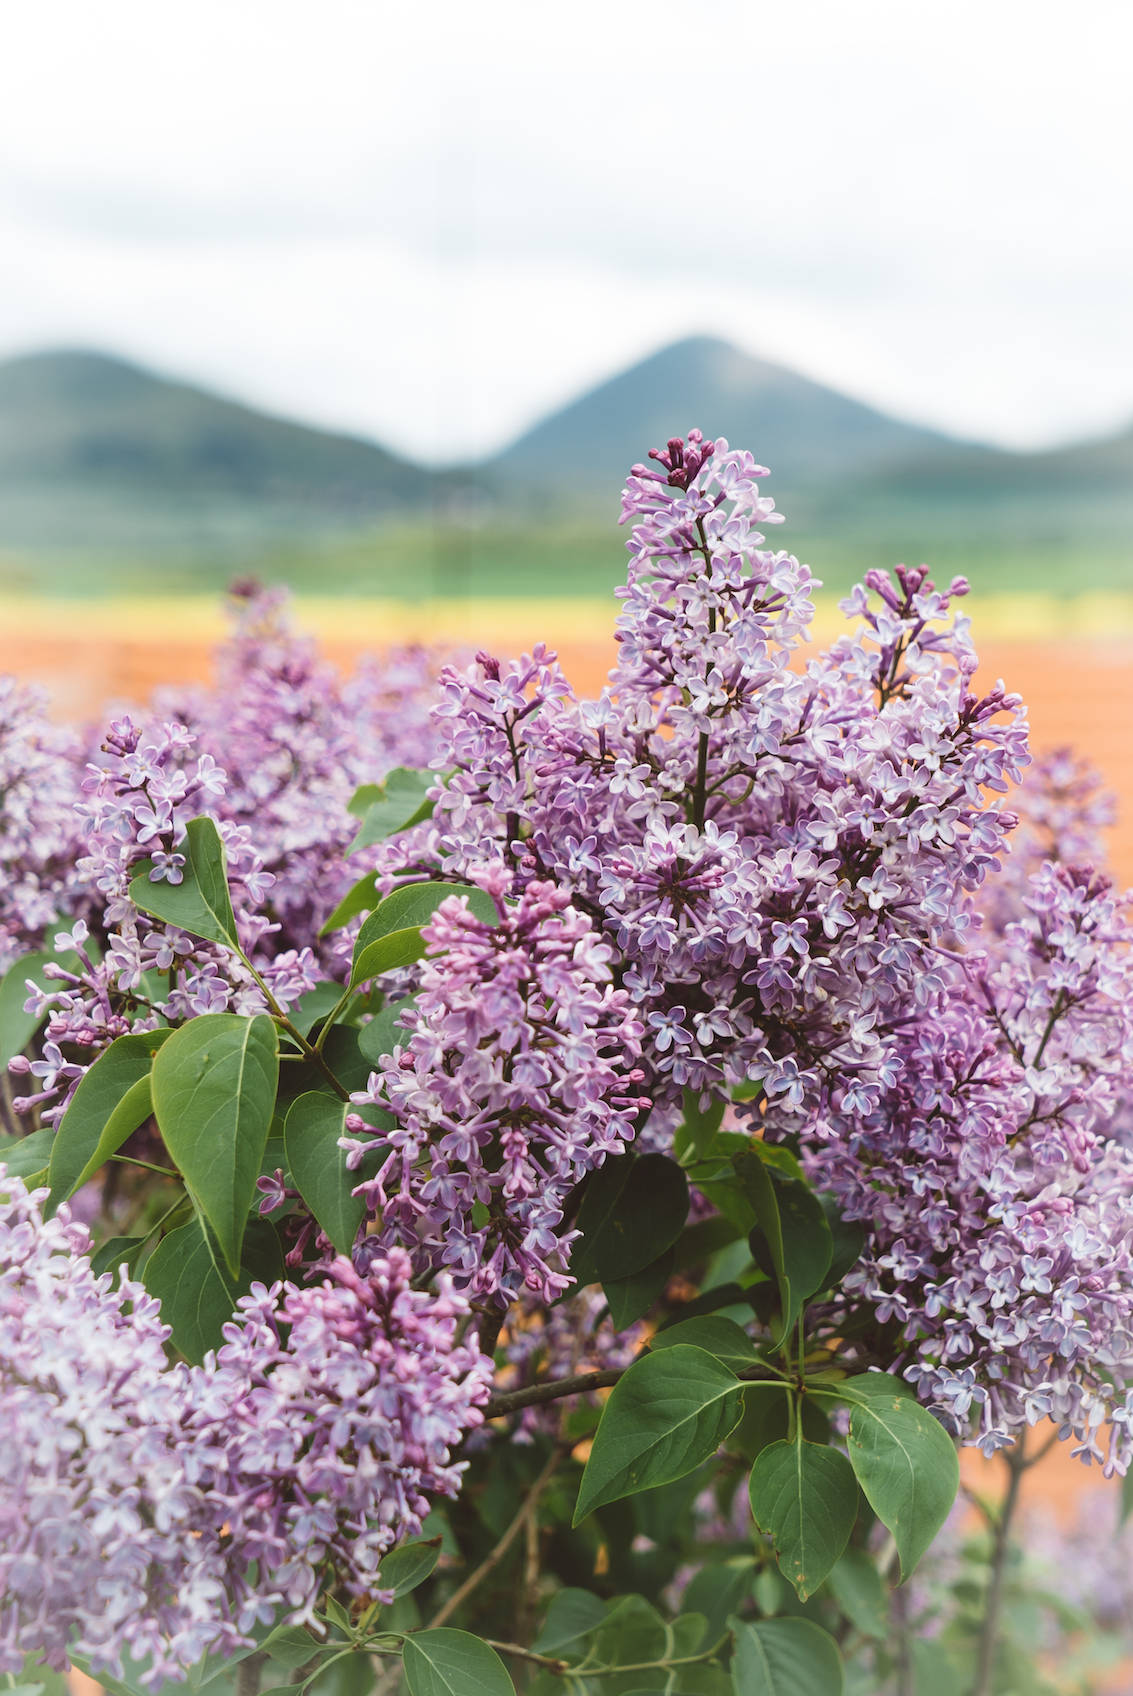 Lilacs Bohemian Highlands Czech Republic